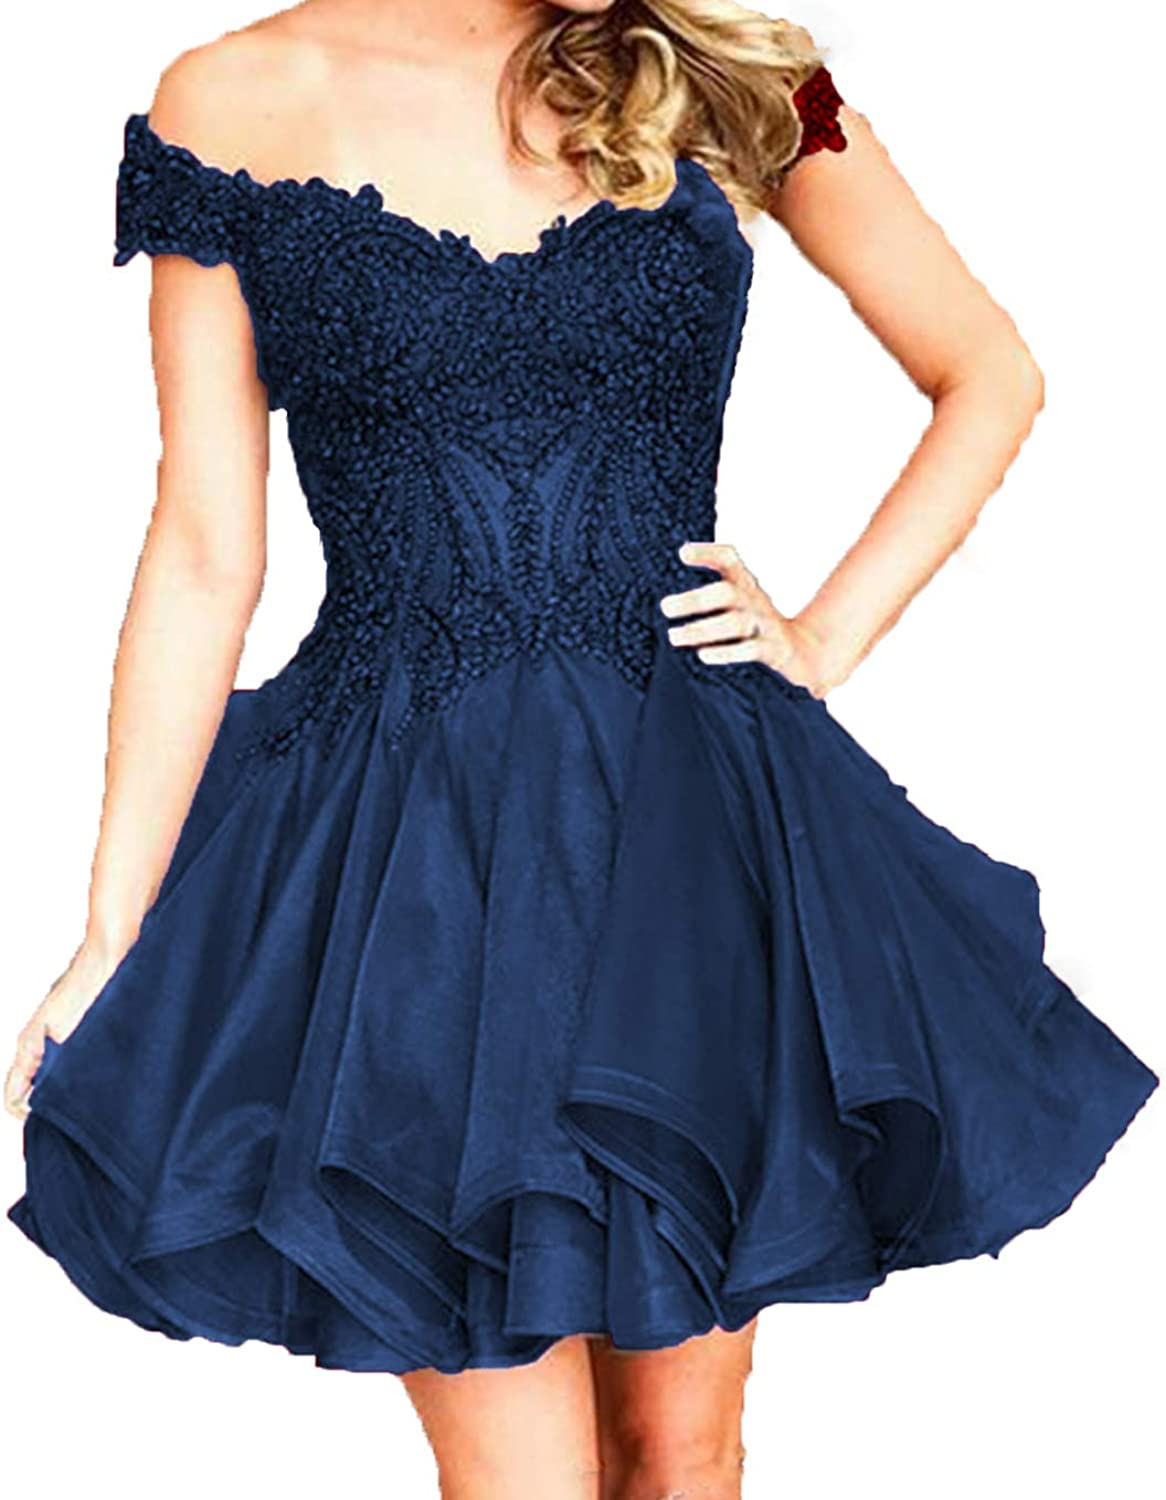 WIYMSHZ Off The Shoulder Homecoming Dresses Short Beads Cocktail Prom Gowns